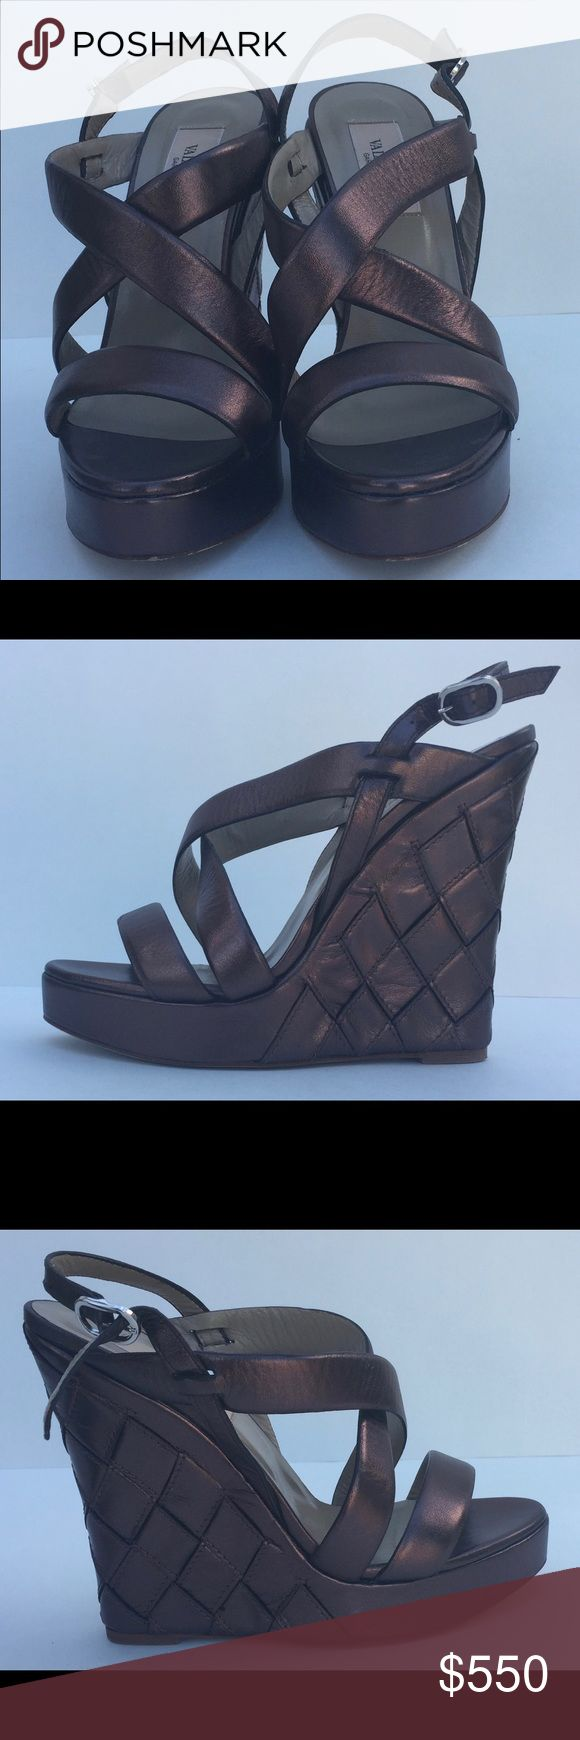 Gorgeous Valentino Wedge Sandals metallic brown 36 Gorgeous* lightly worn * excellent condition* it's a unique color a bronze brown.  Just stunning.  These are comfortable and will class up any outfit. Original price from Saks was 1499.00 Valentino Shoes Wedges